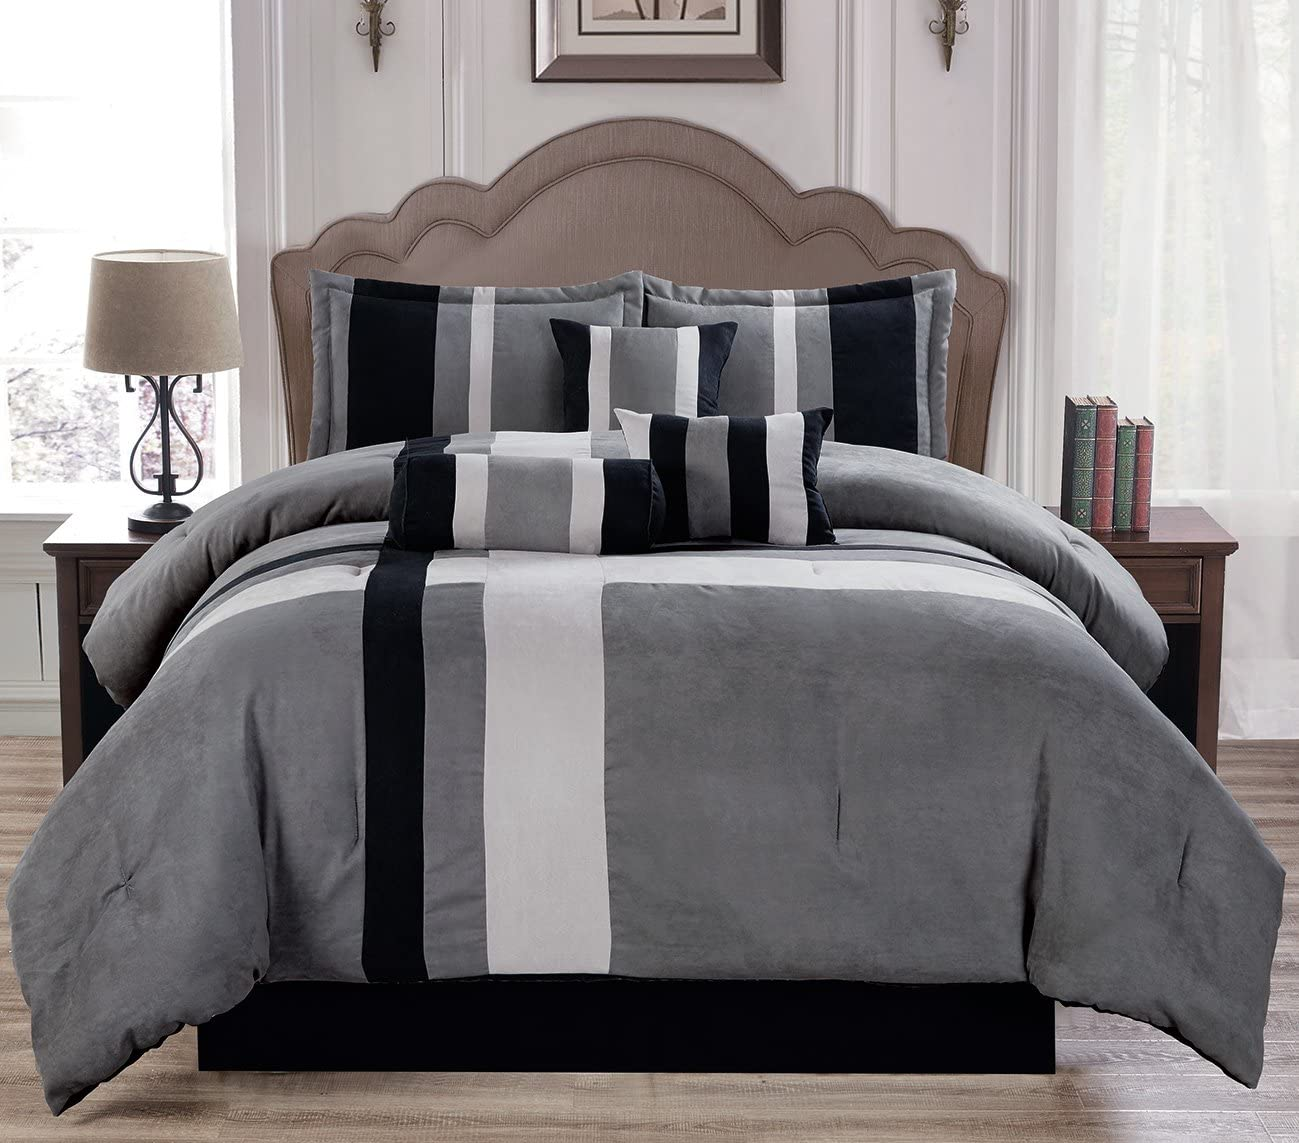 Empire Home luxurious 7 Piece Micro Suede Soft Comforter Set - Bed in a Bag (Queen Size, Black & Gray)